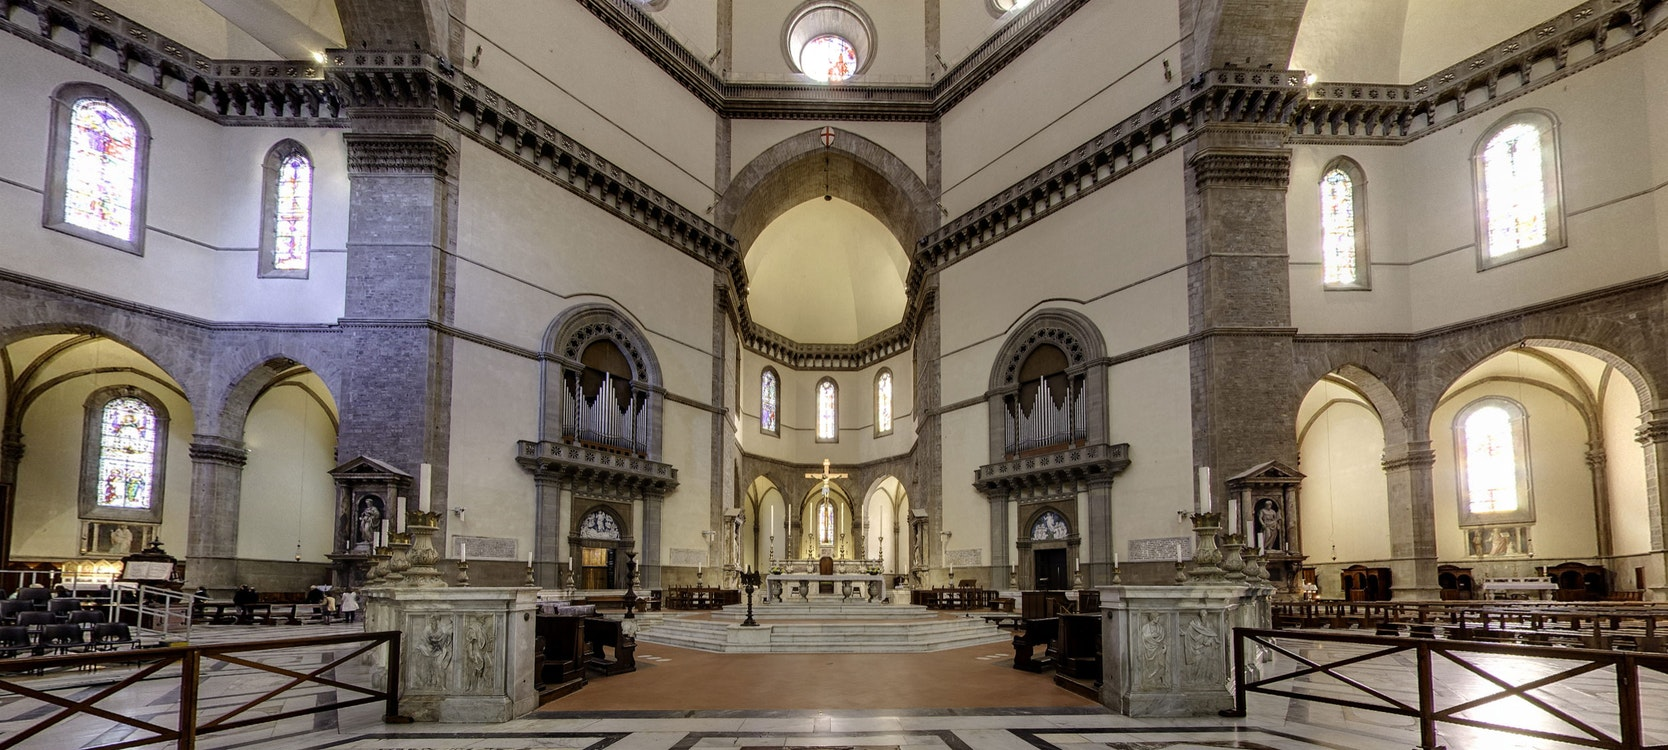 an analysis of the duomo of florence cathedral church Florence cathedral, formally the cattedrale di santa maria del fiore (italian pronunciation: [katteˈdraːle di ˈsanta maˈriːa del ˈfjoːre] in english cathedral of saint mary of the flower), is the cathedral of florence, italy (italian: duomo di firenze.